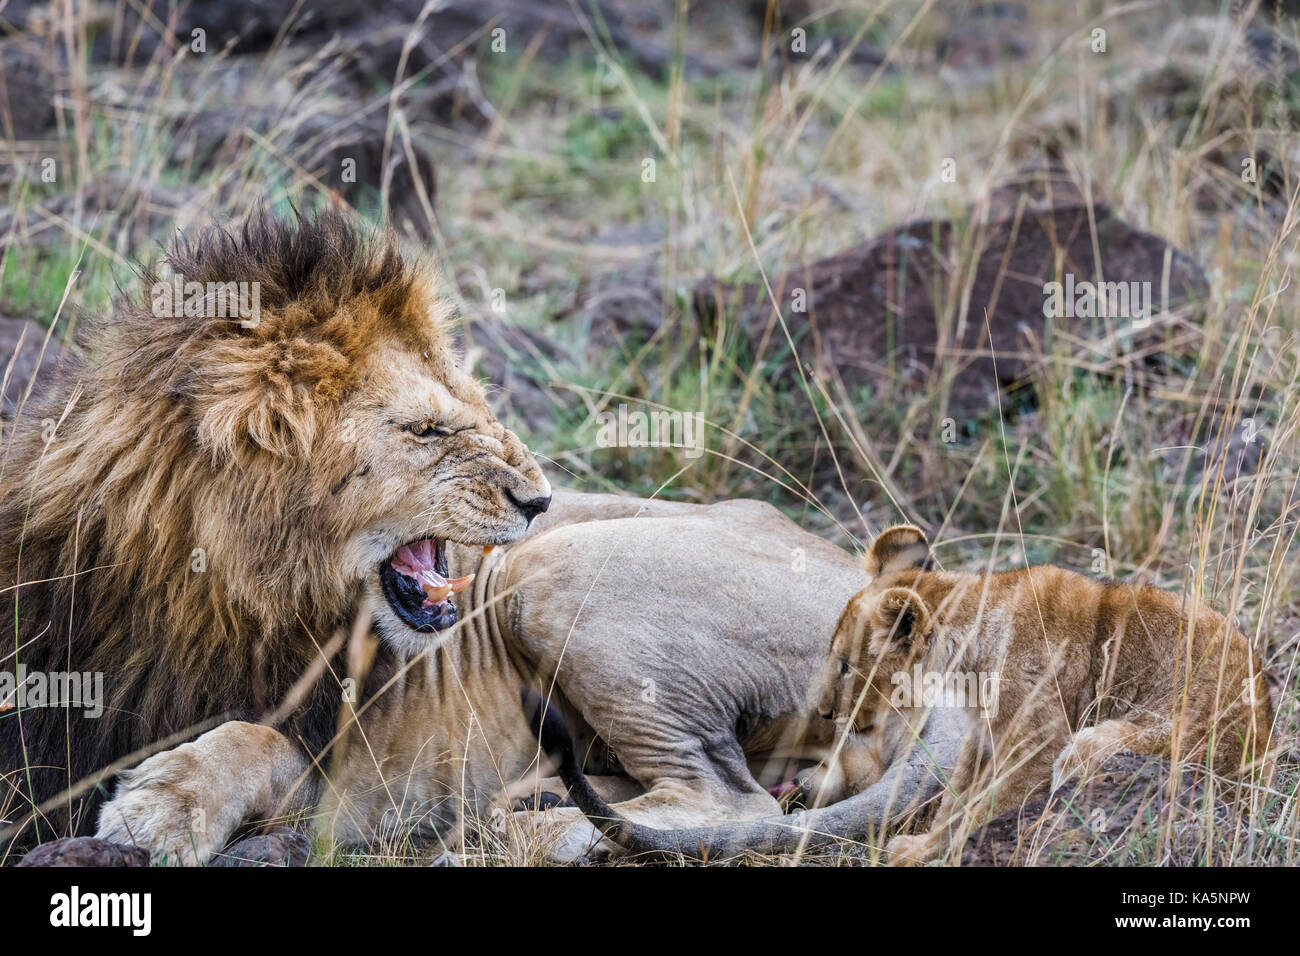 Growling lion: Aggressive adult male Masra lion (Panthera leo) bares its teeth as it growls and snarls at a cowering - Stock Image